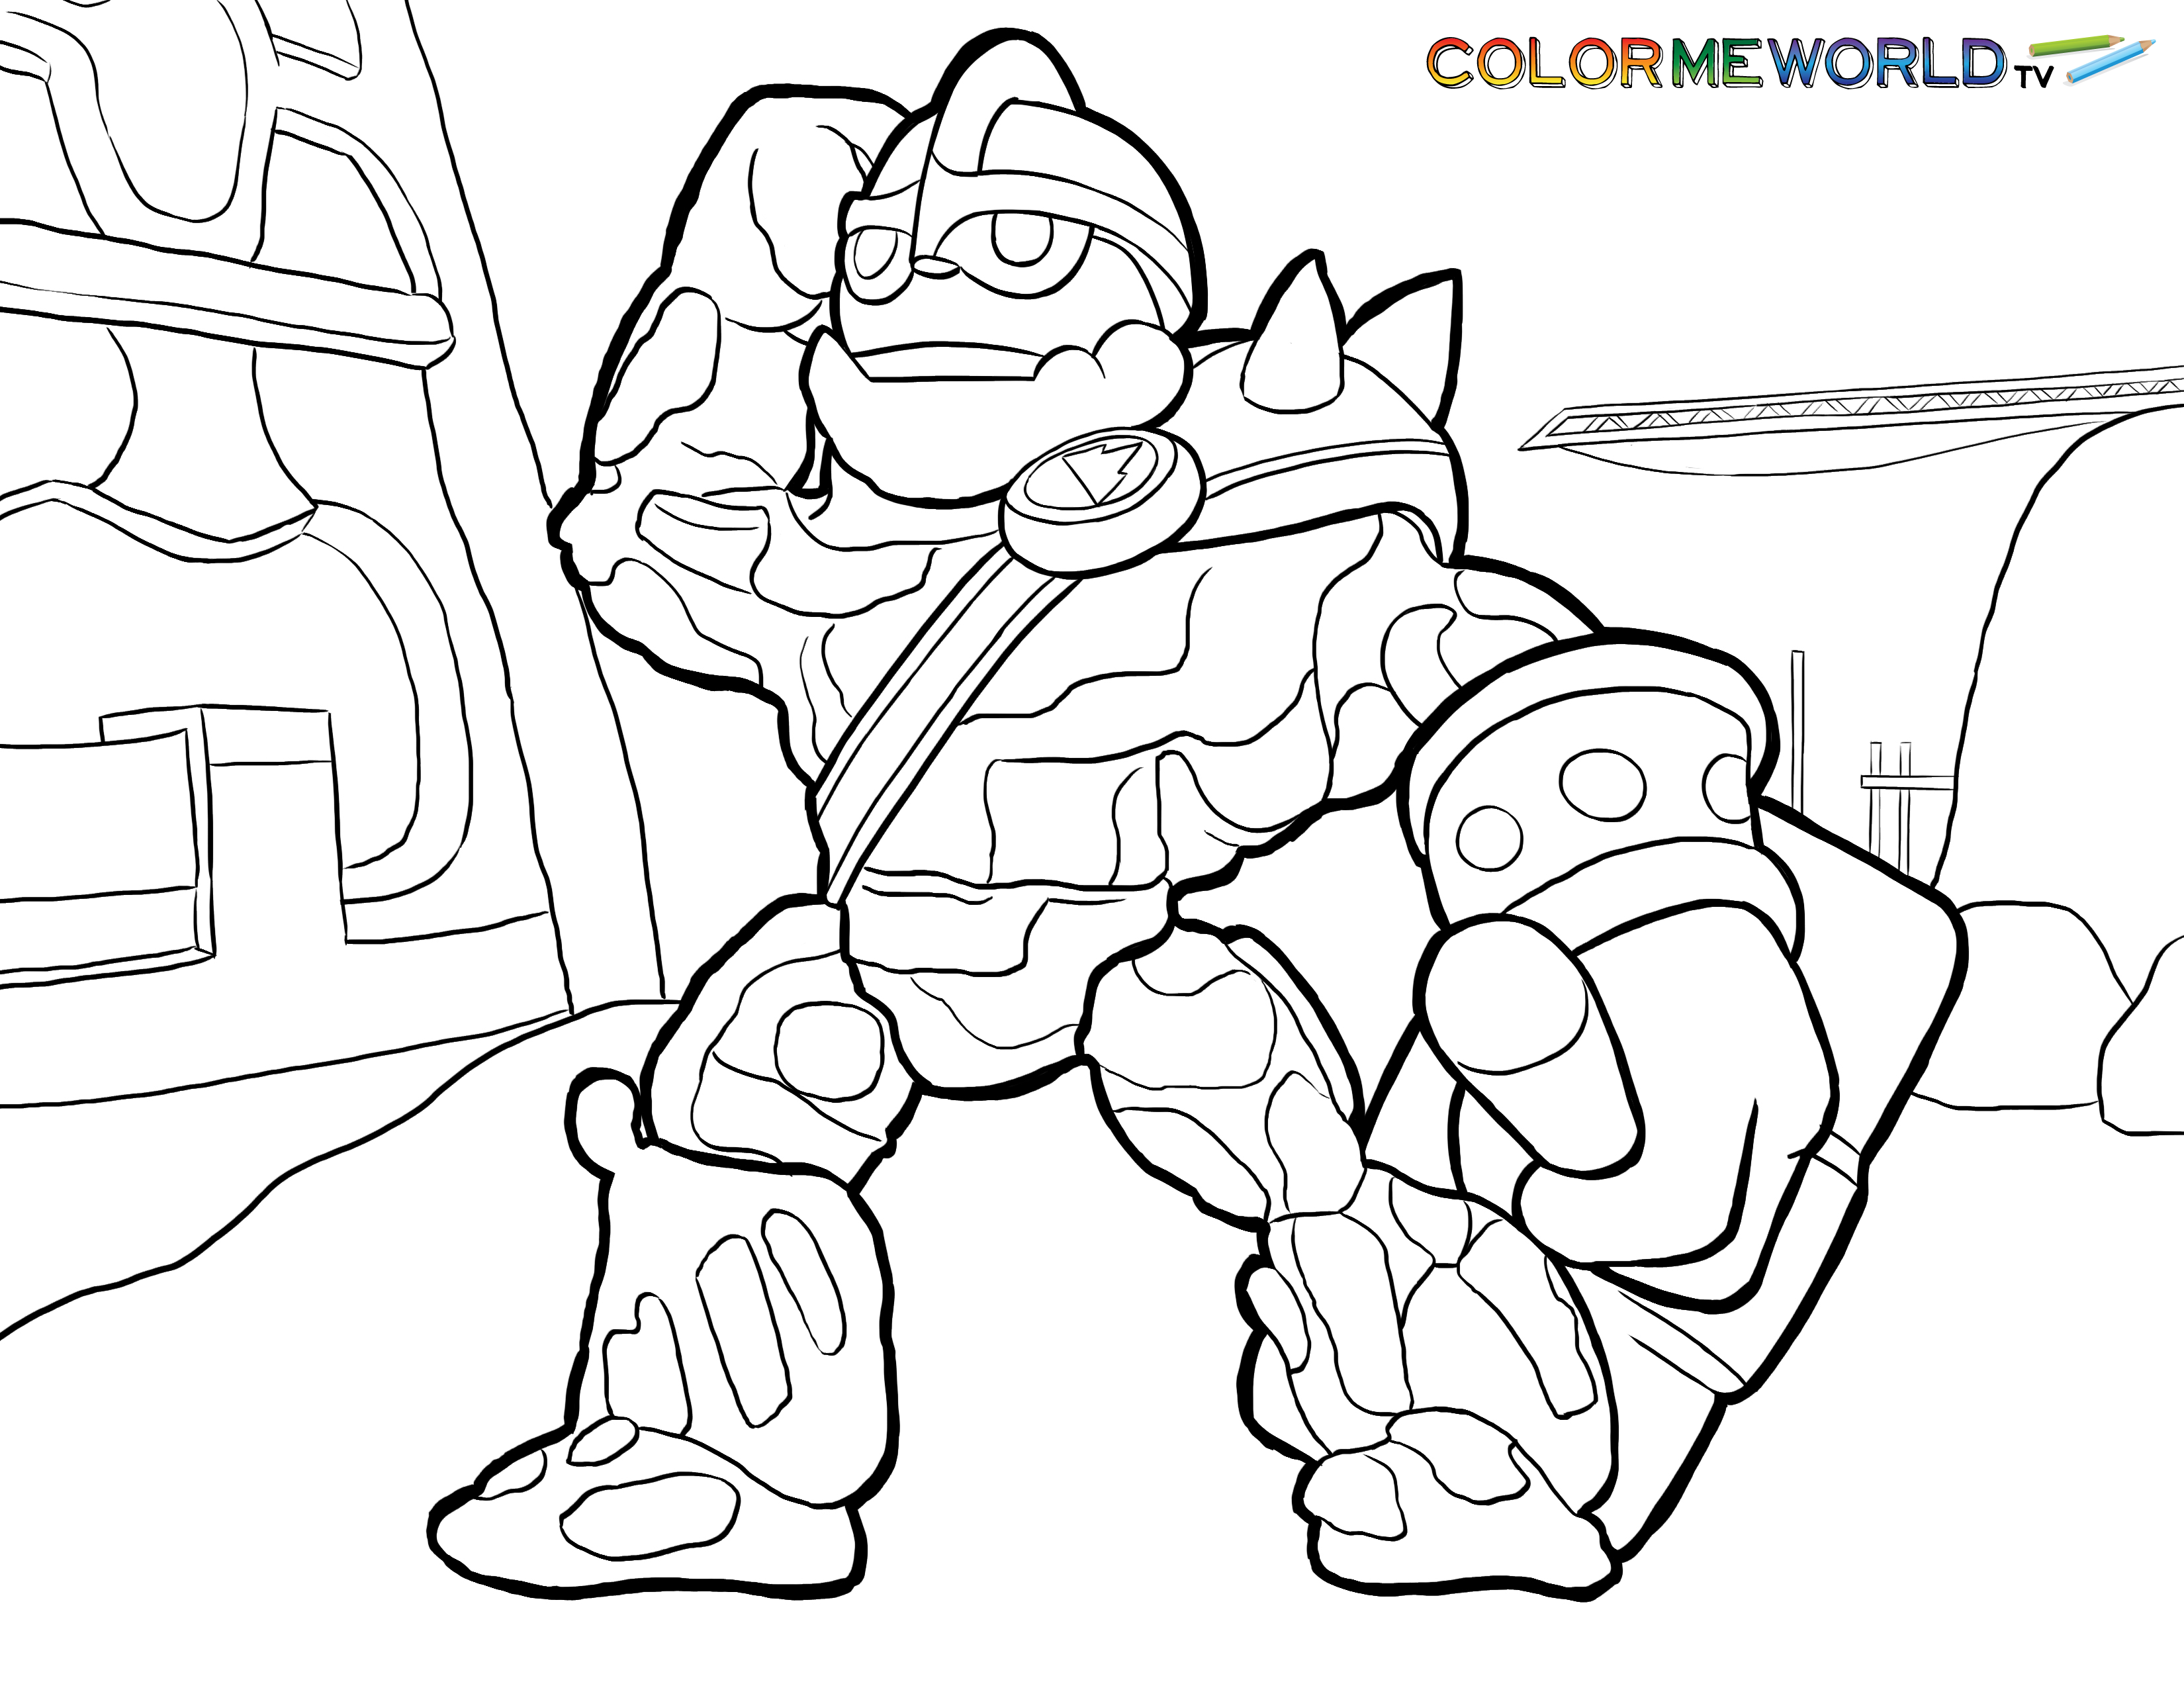 Action Beauty Coloring Pages Of Skylanders Gallery Images top swarm coloring page skylanders pages pinterest and colors gallery images